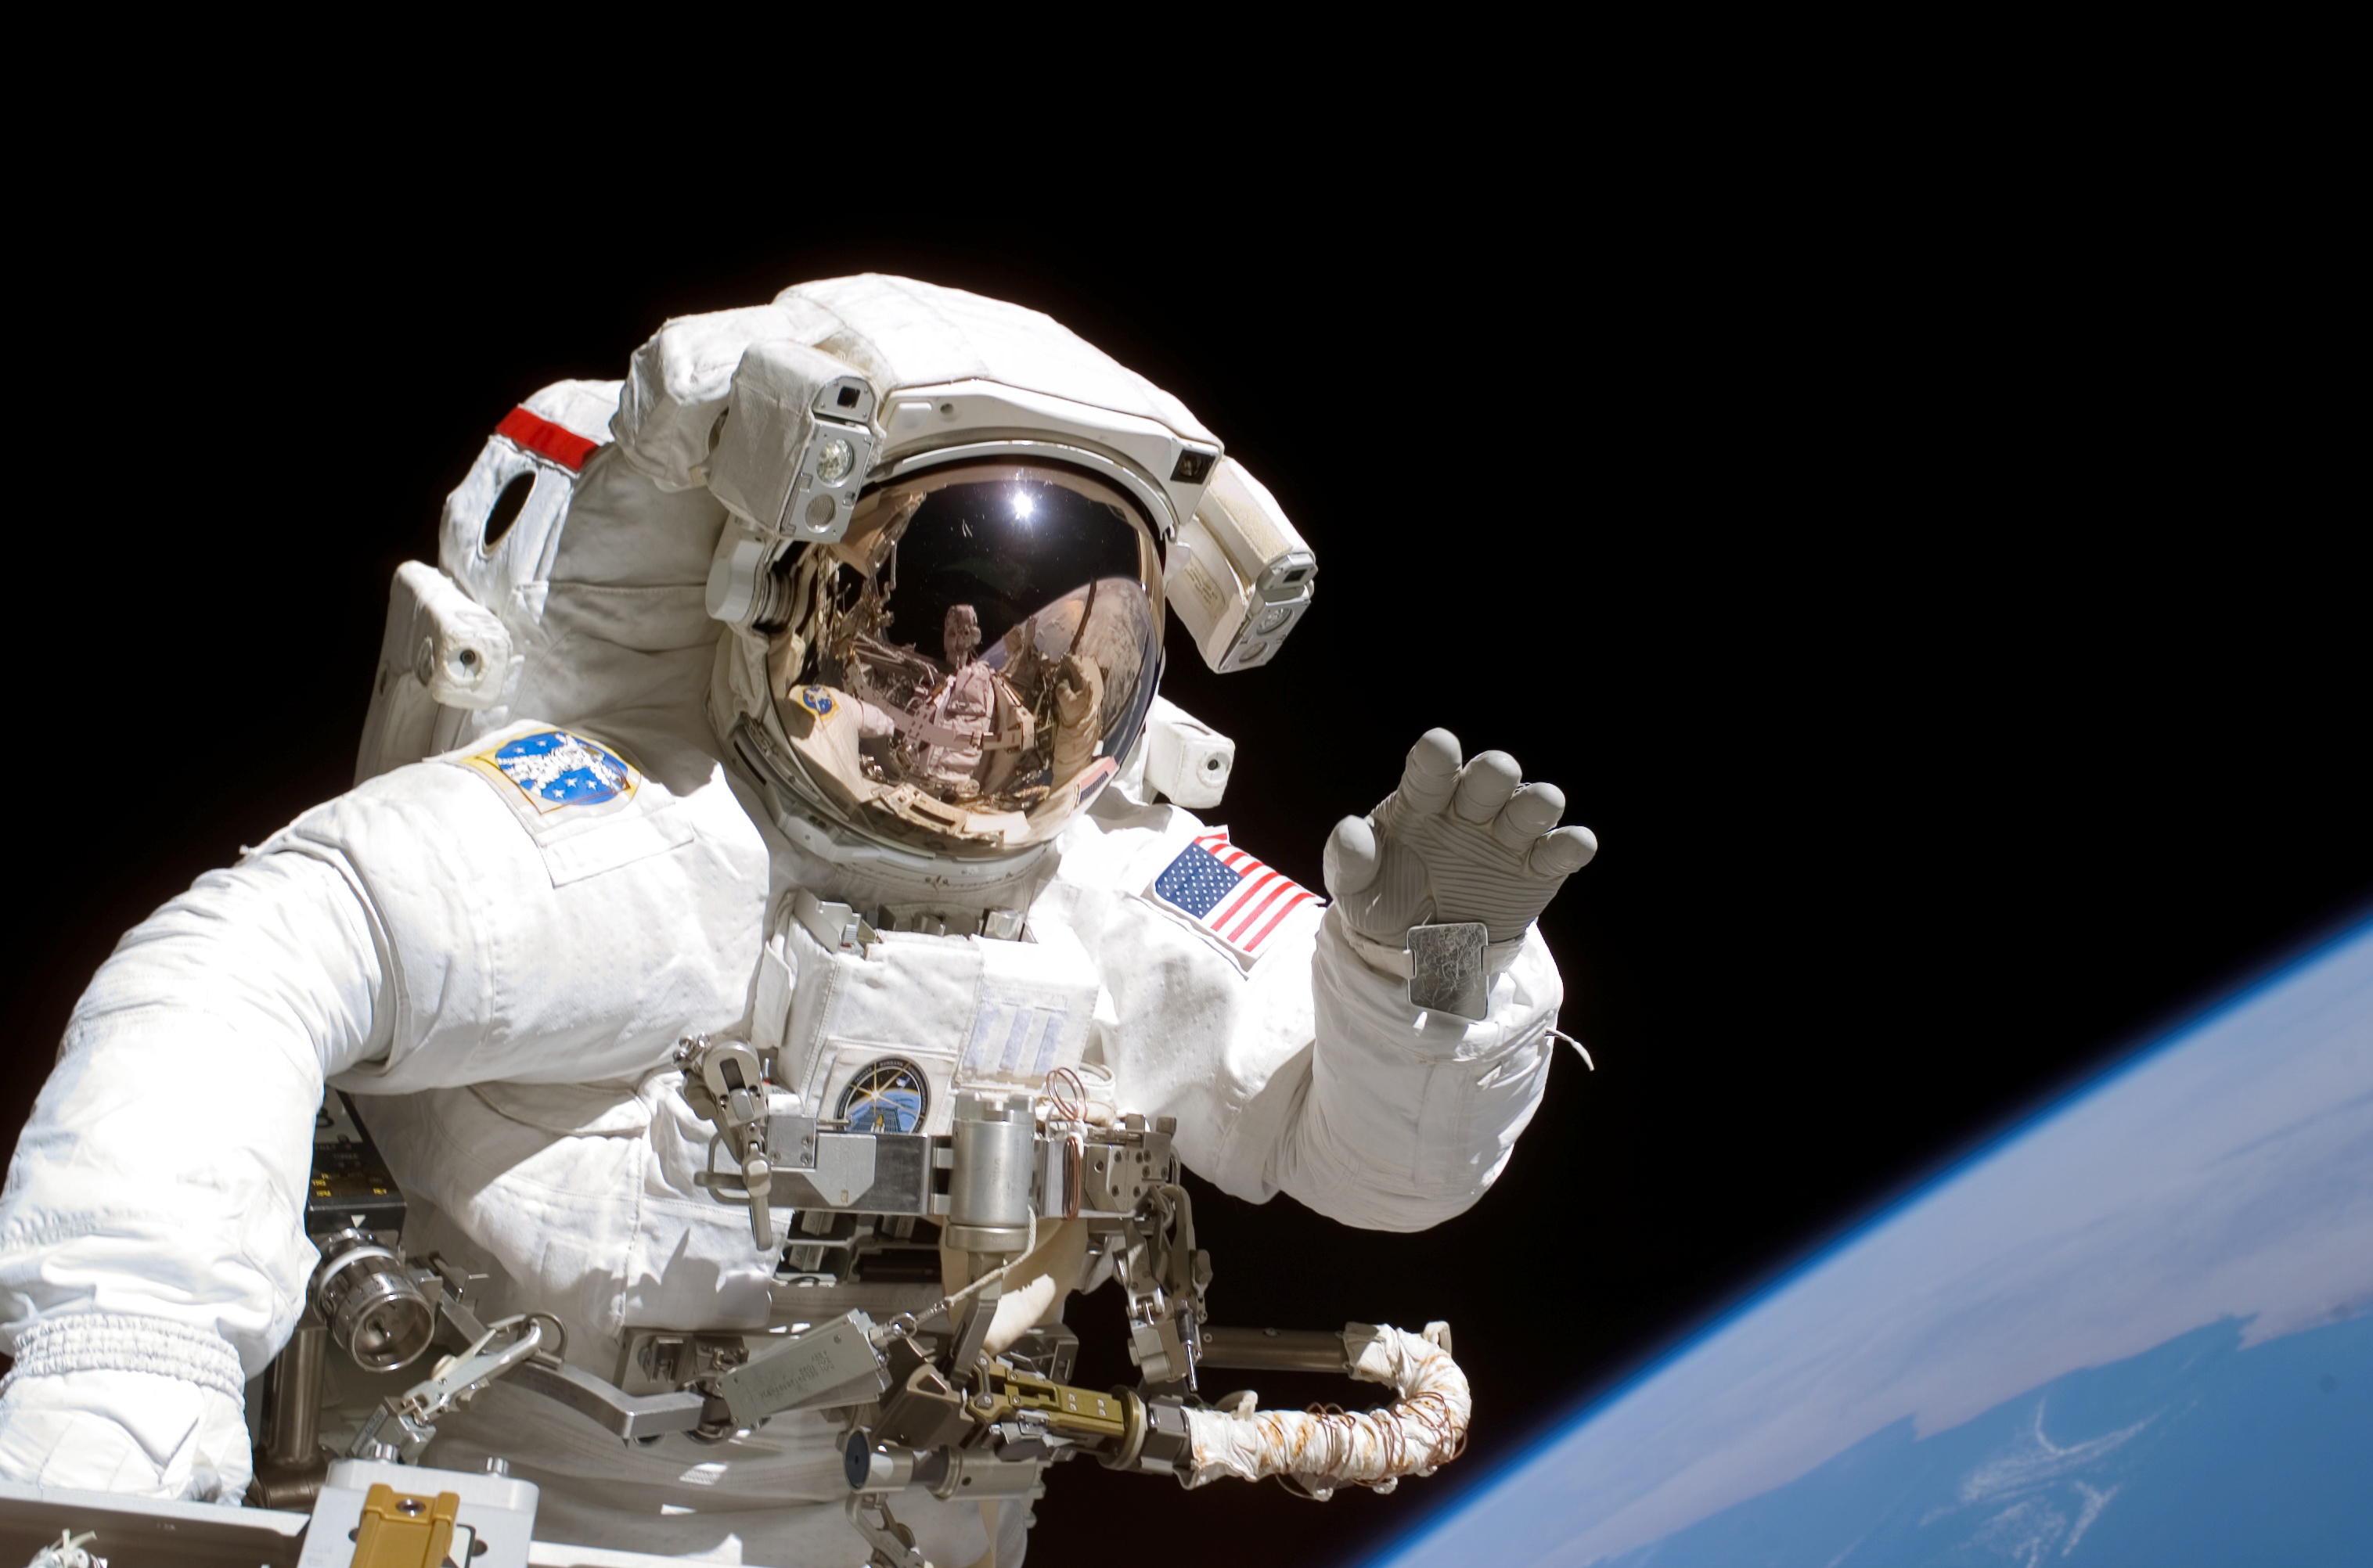 Space Shuttle Astronaut on Spacewalk (STS-115)